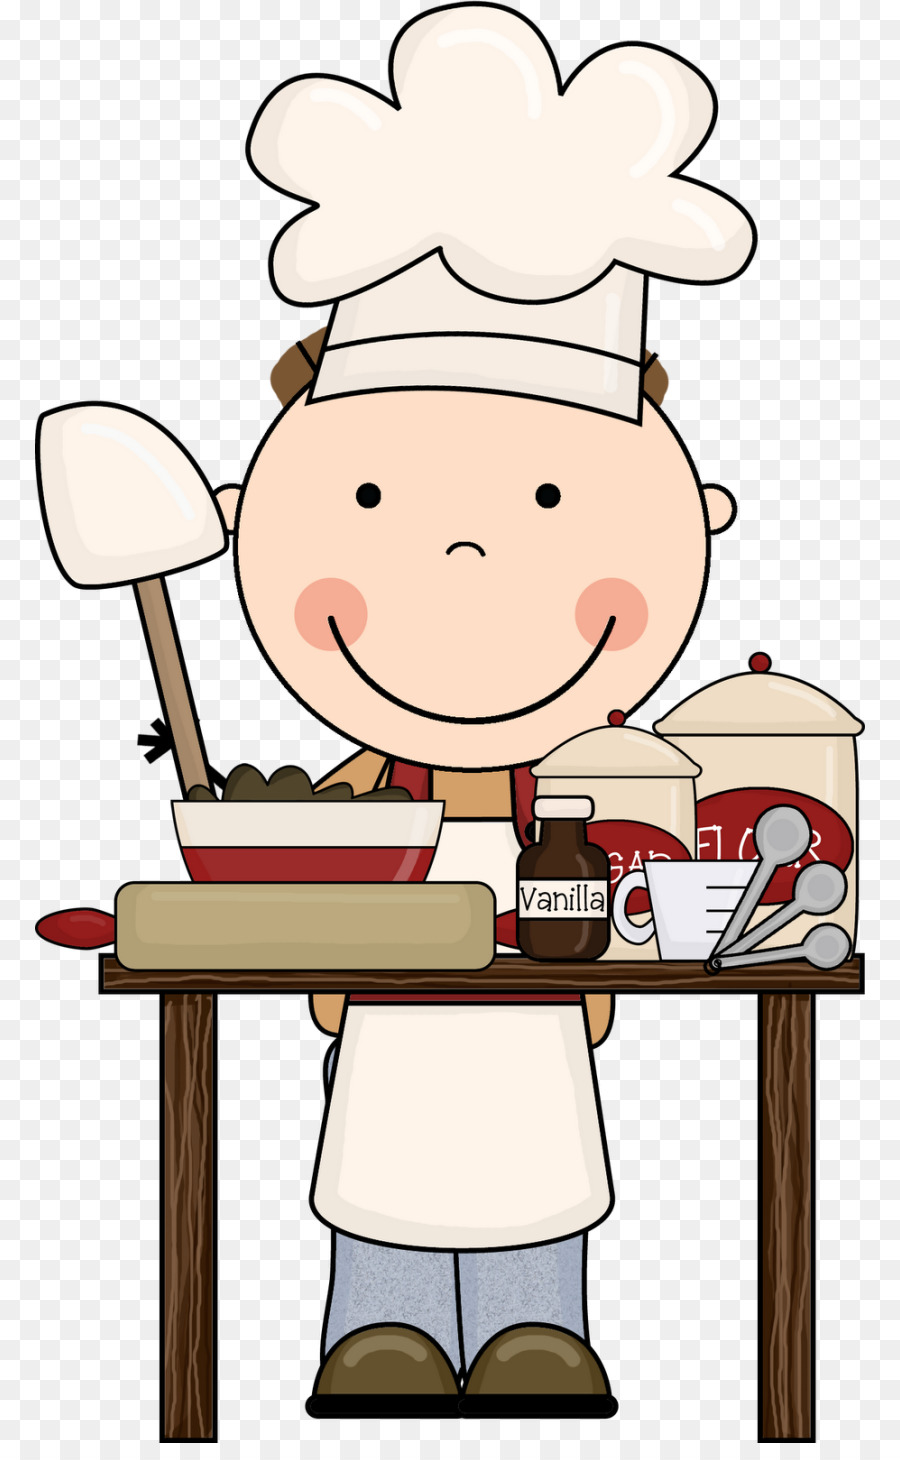 Cooking school baking chef. Baker clipart culinary art